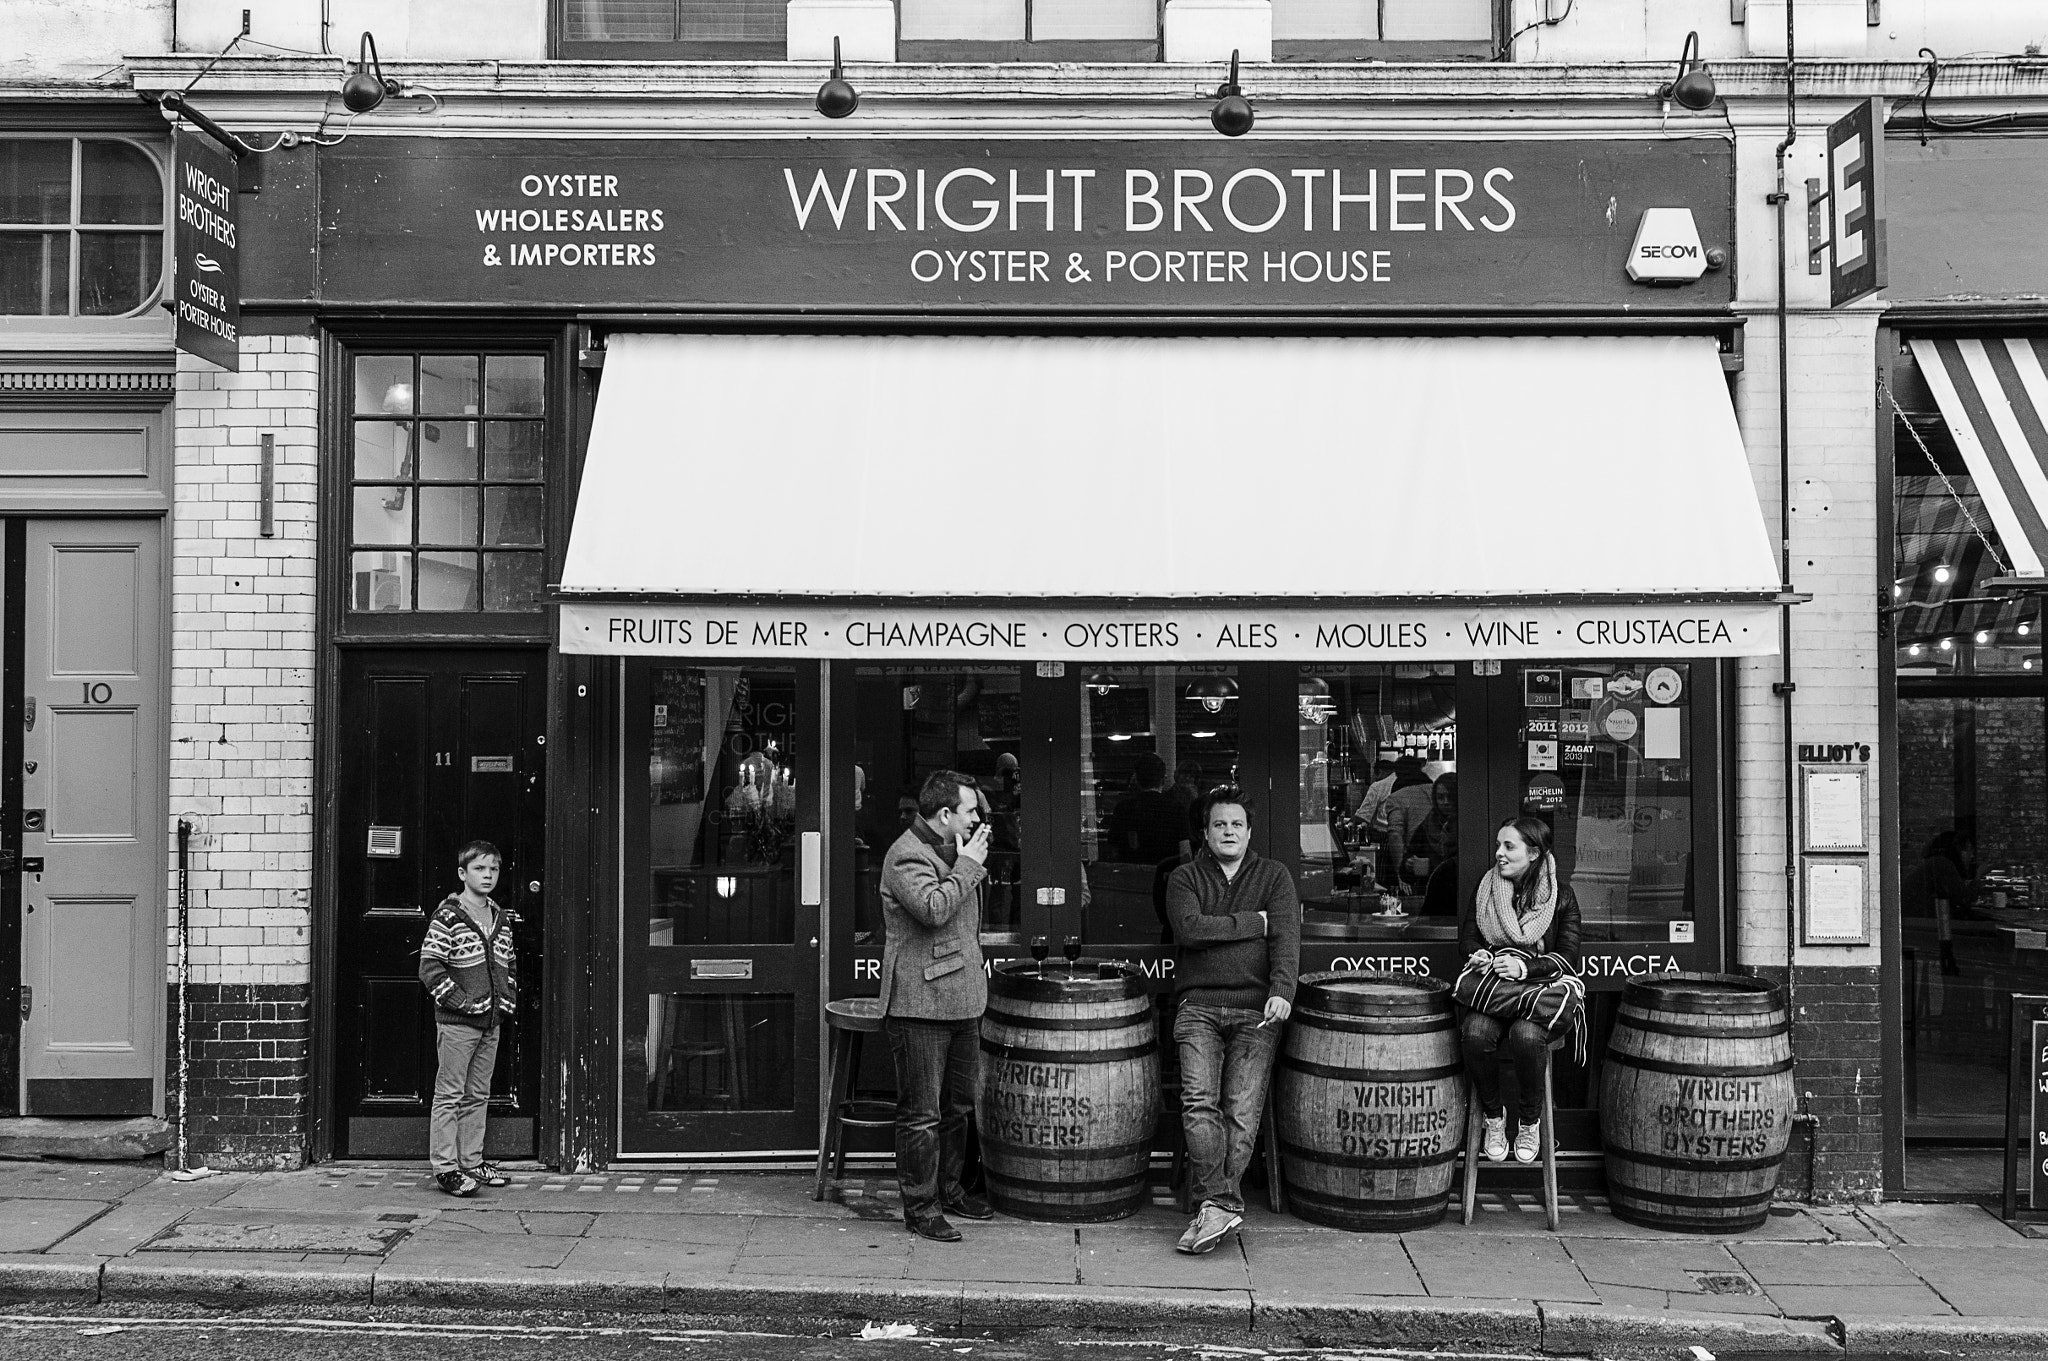 Photograph Wright Brothers by Andy Kirby on 500px